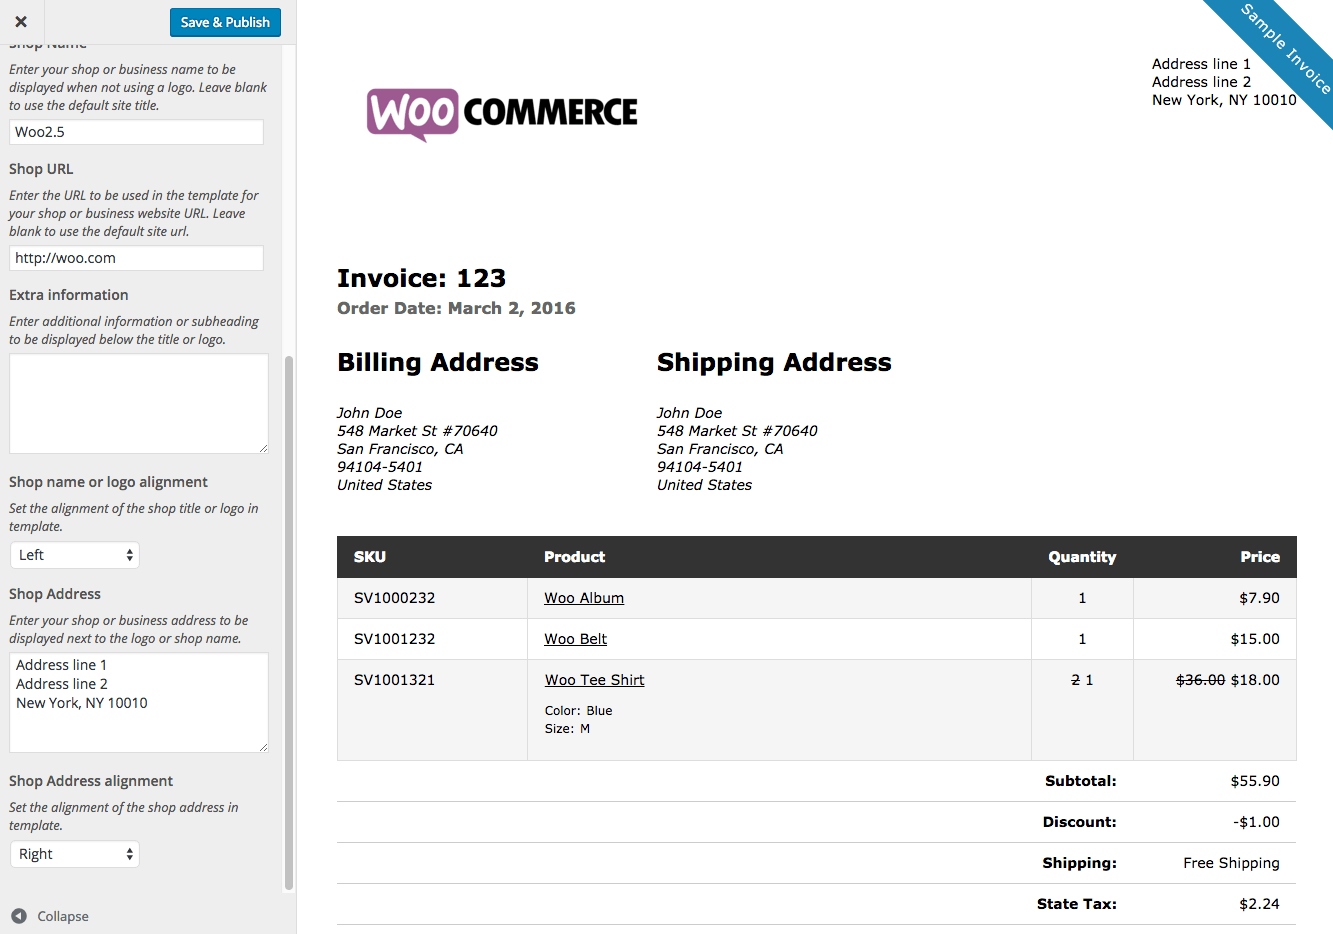 Howcanigettallerus  Marvellous Woocommerce Print Invoices Amp Packing Lists  Woocommerce Docs With Likable Woocommerce Print Invoices  Packing Lists Customizer With Cool Handyman Receipt Template Also How To Write A Sales Receipt In Addition Thermal Receipt Printer Paper And Delaware Division Of Revenue Gross Receipts As Well As Transaction Receipt Template Additionally Used Receipt Printer From Docswoocommercecom With Howcanigettallerus  Likable Woocommerce Print Invoices Amp Packing Lists  Woocommerce Docs With Cool Woocommerce Print Invoices  Packing Lists Customizer And Marvellous Handyman Receipt Template Also How To Write A Sales Receipt In Addition Thermal Receipt Printer Paper From Docswoocommercecom